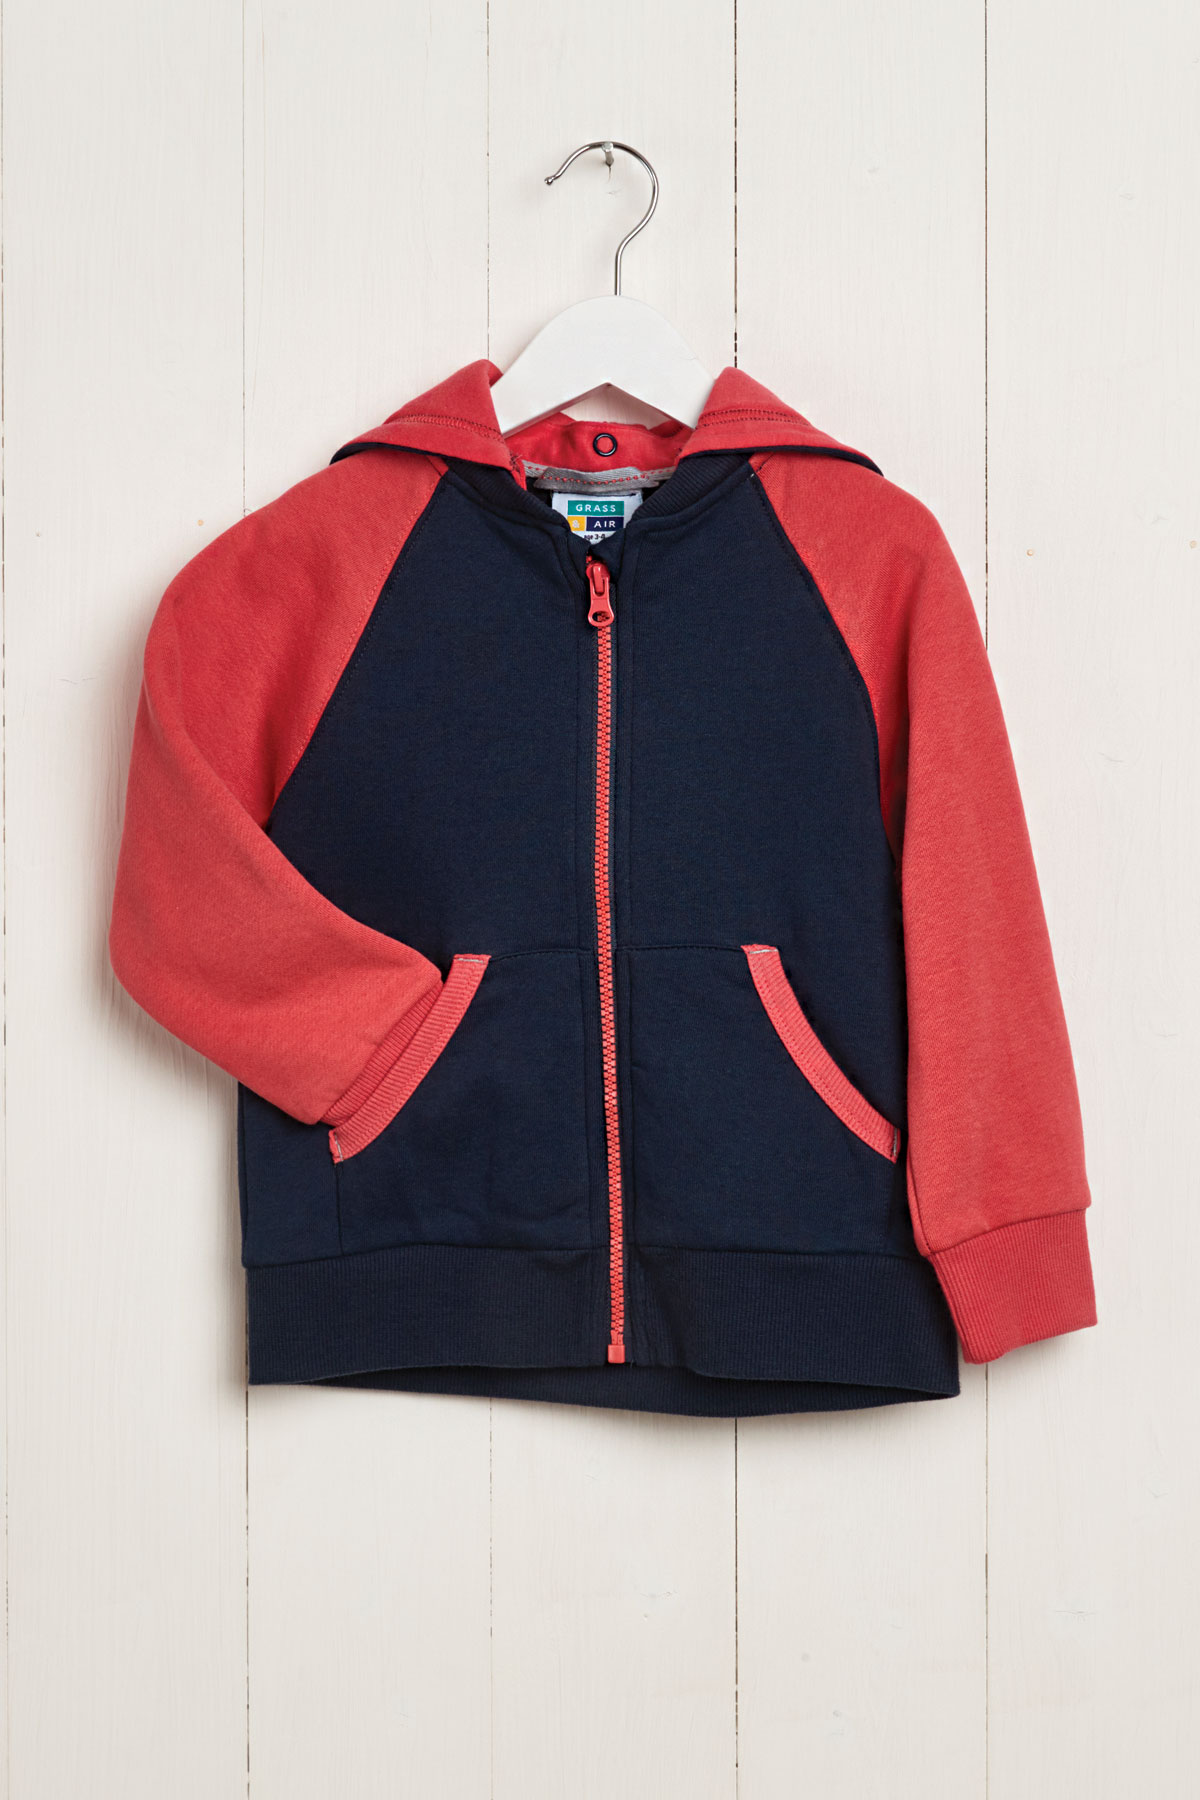 front product hanger view kids navy & coral hoody